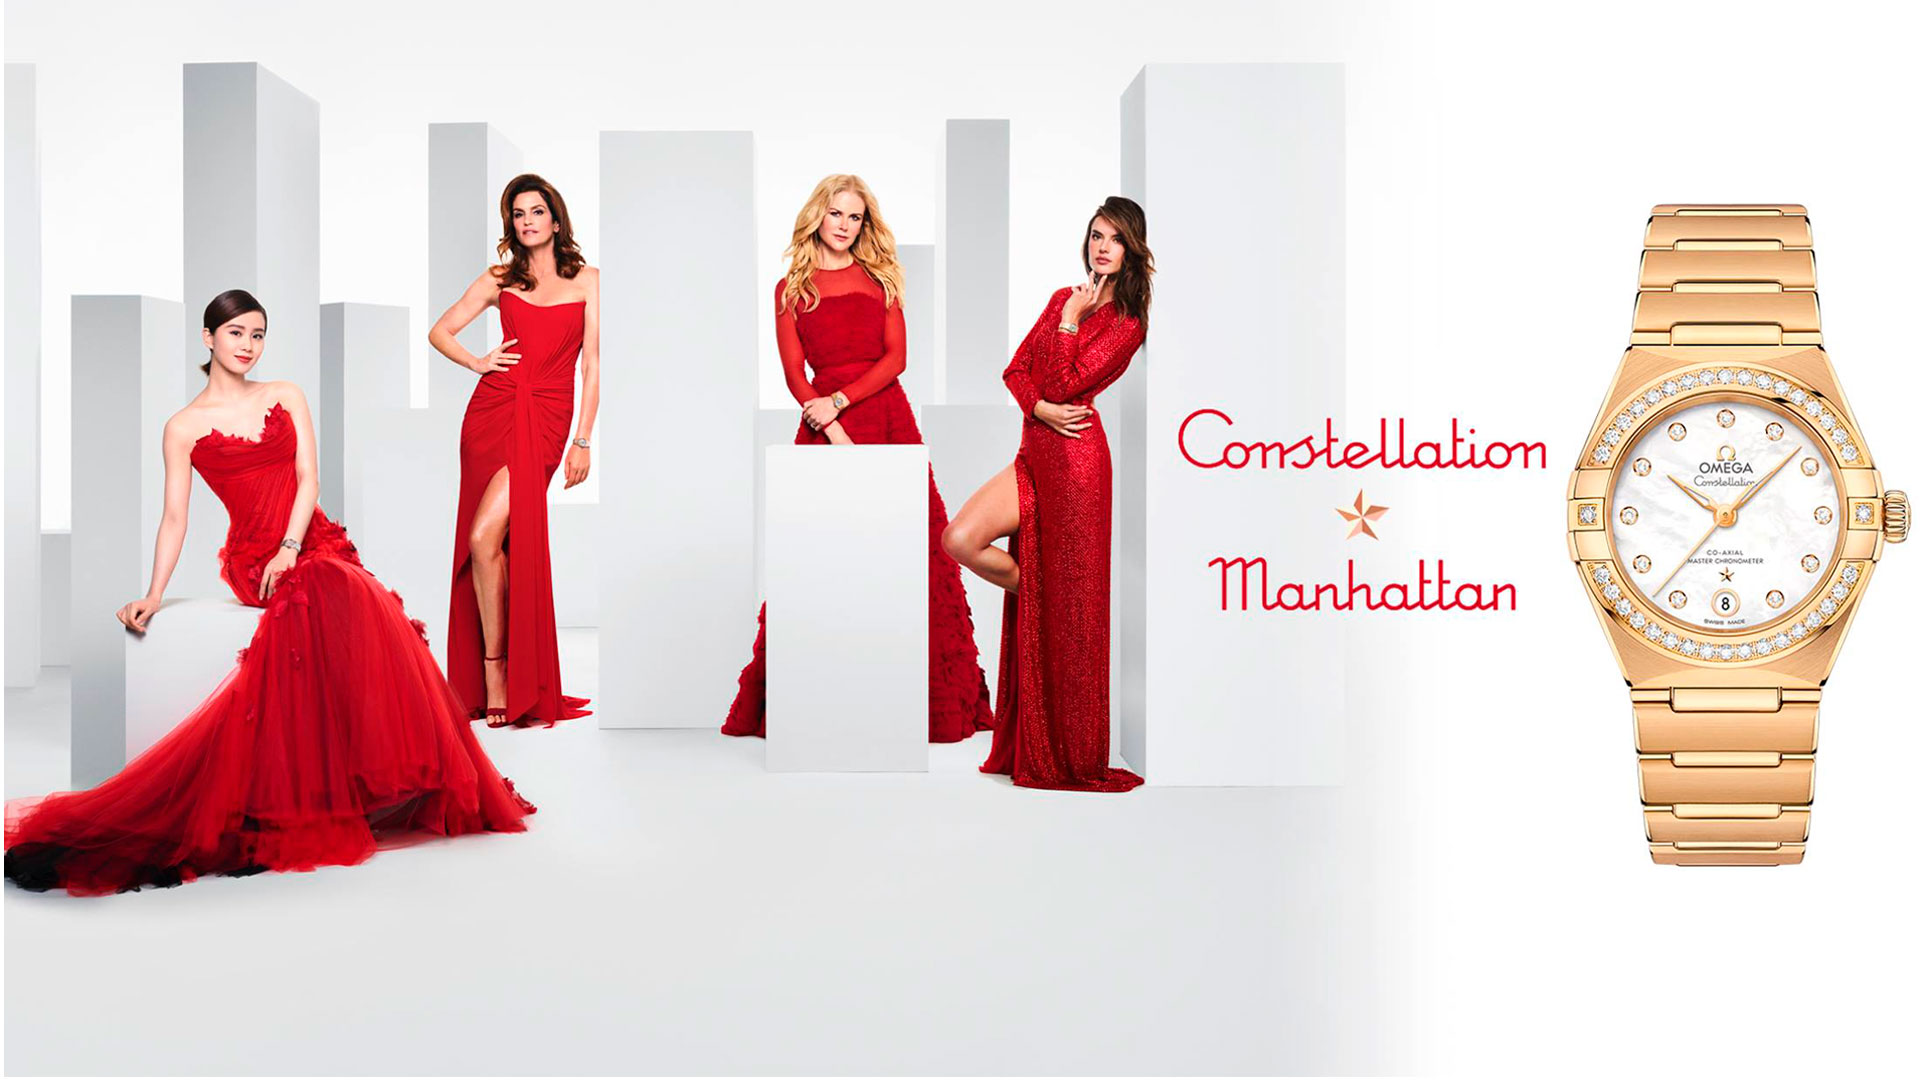 The Constellation Manhattan Ladies Collection